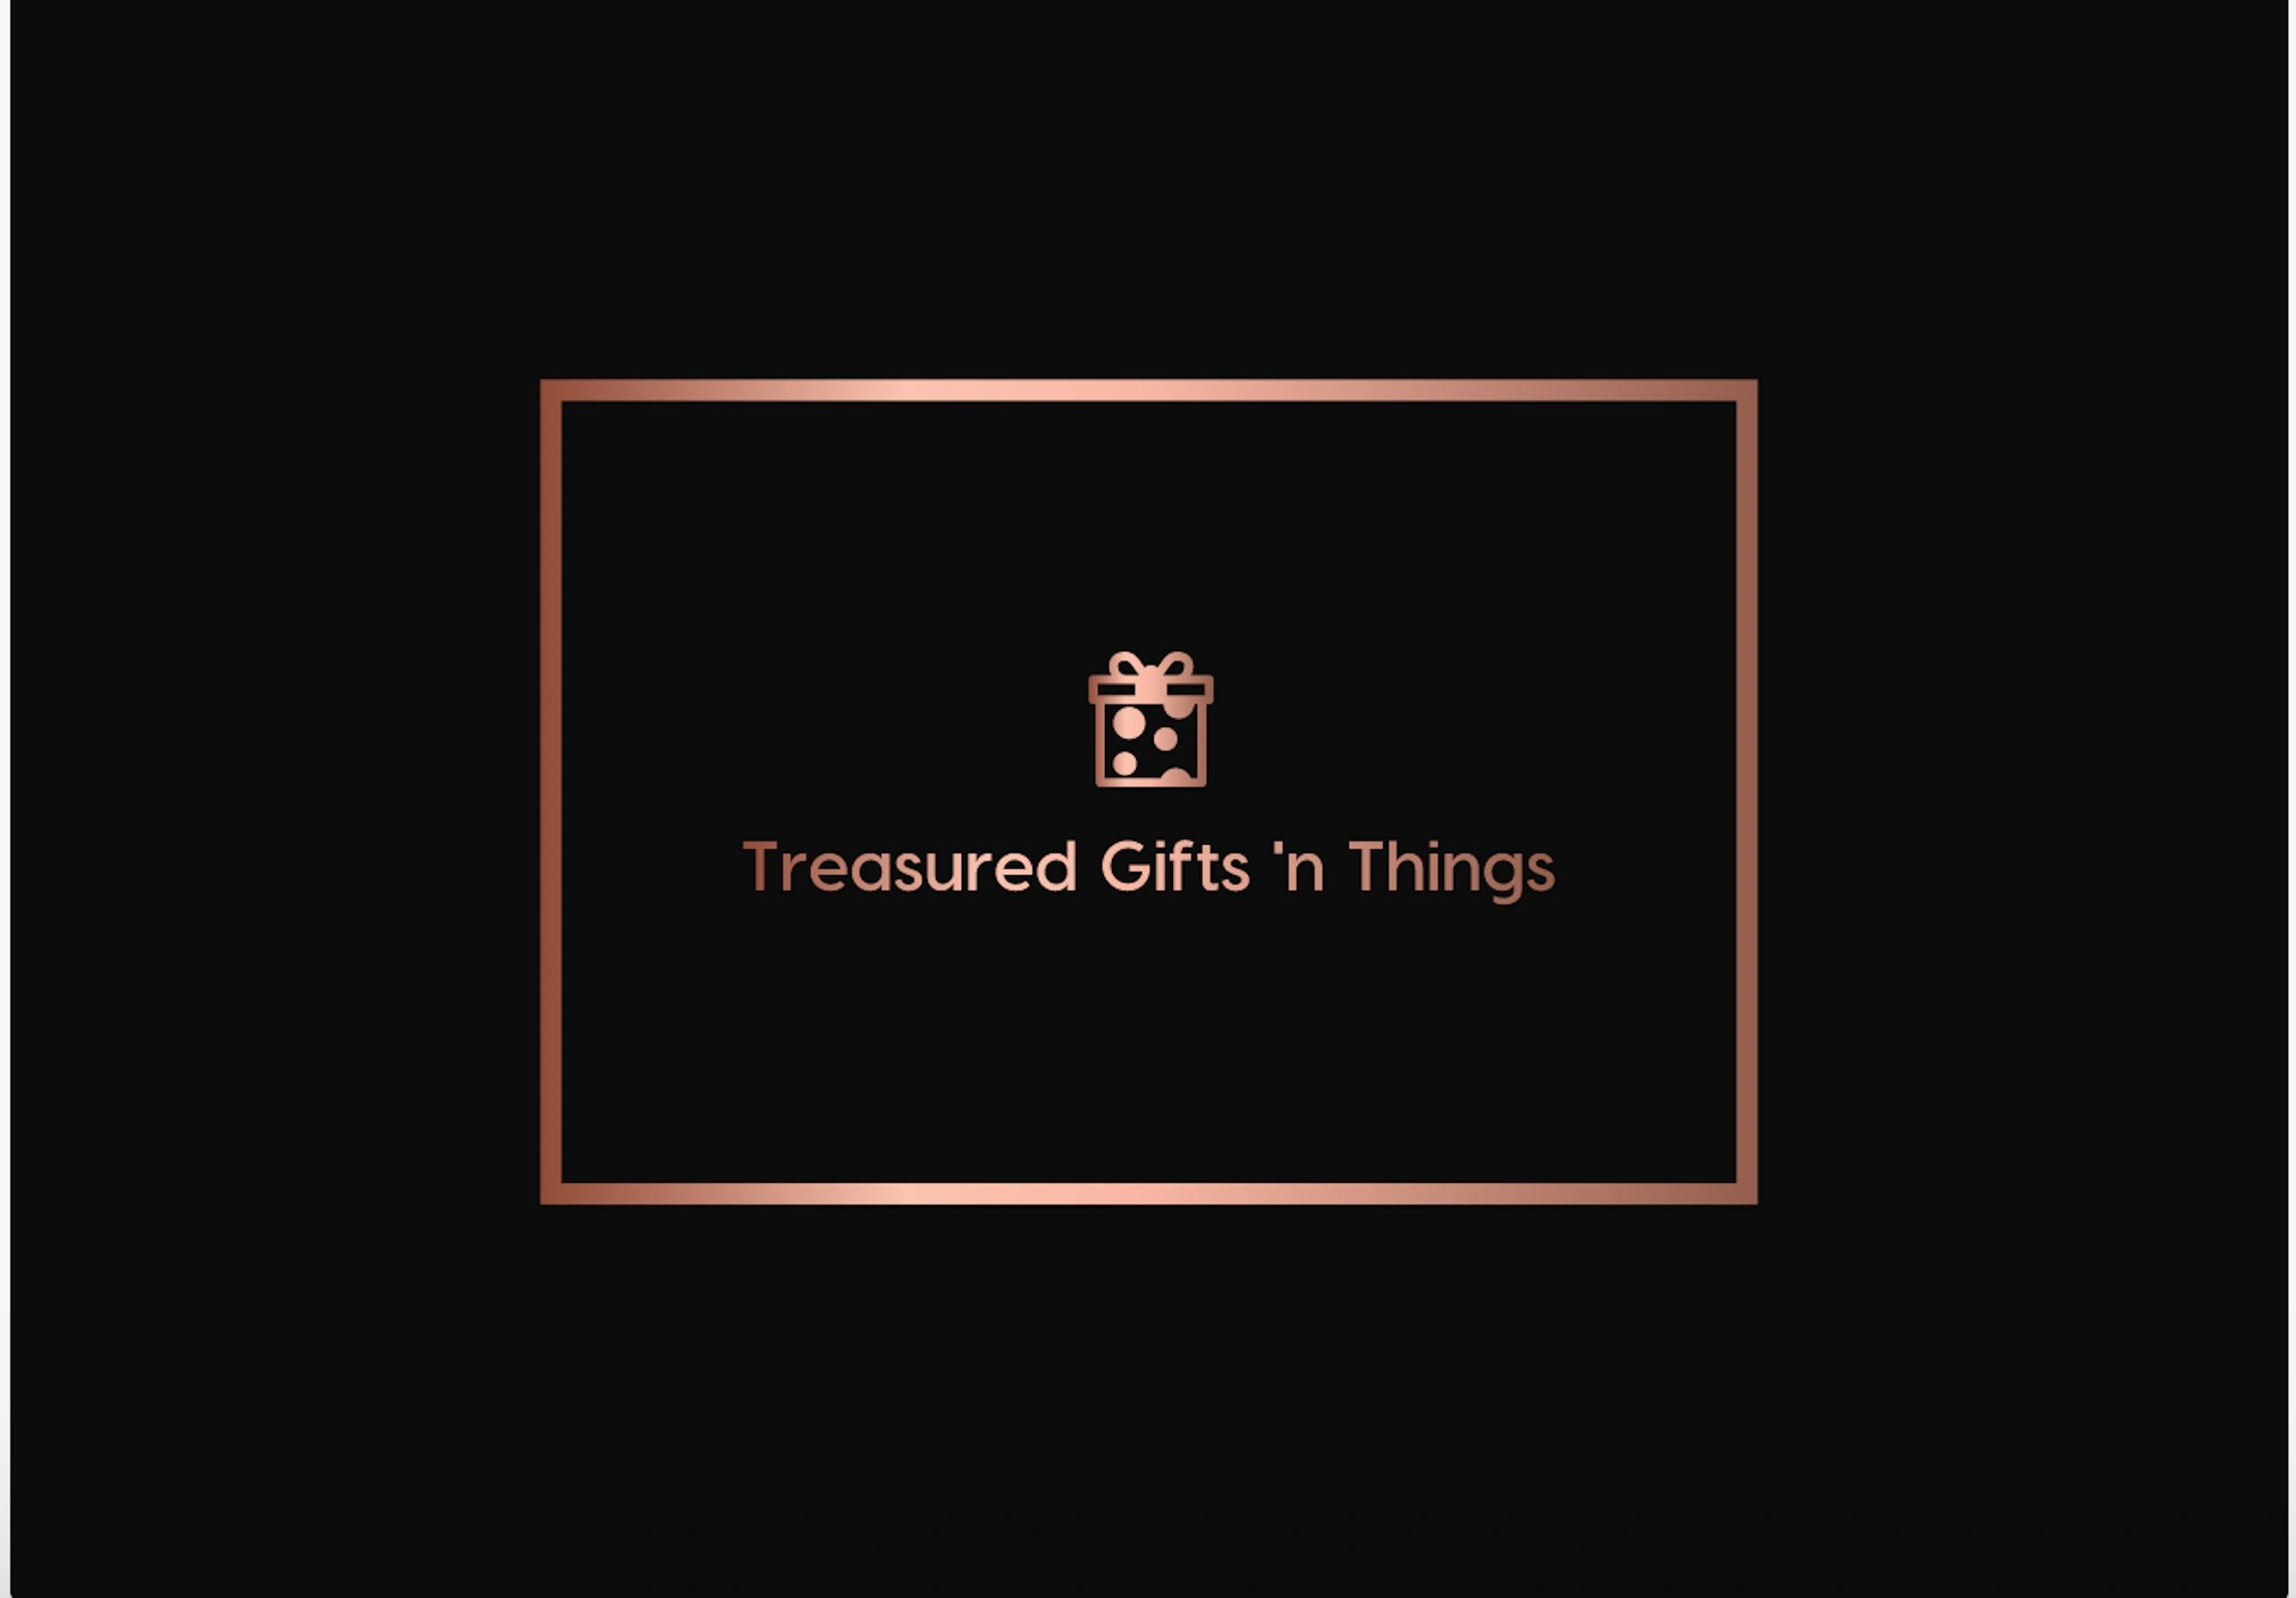 6c6a066b43c Treasured Gifts  n Things - Our Events